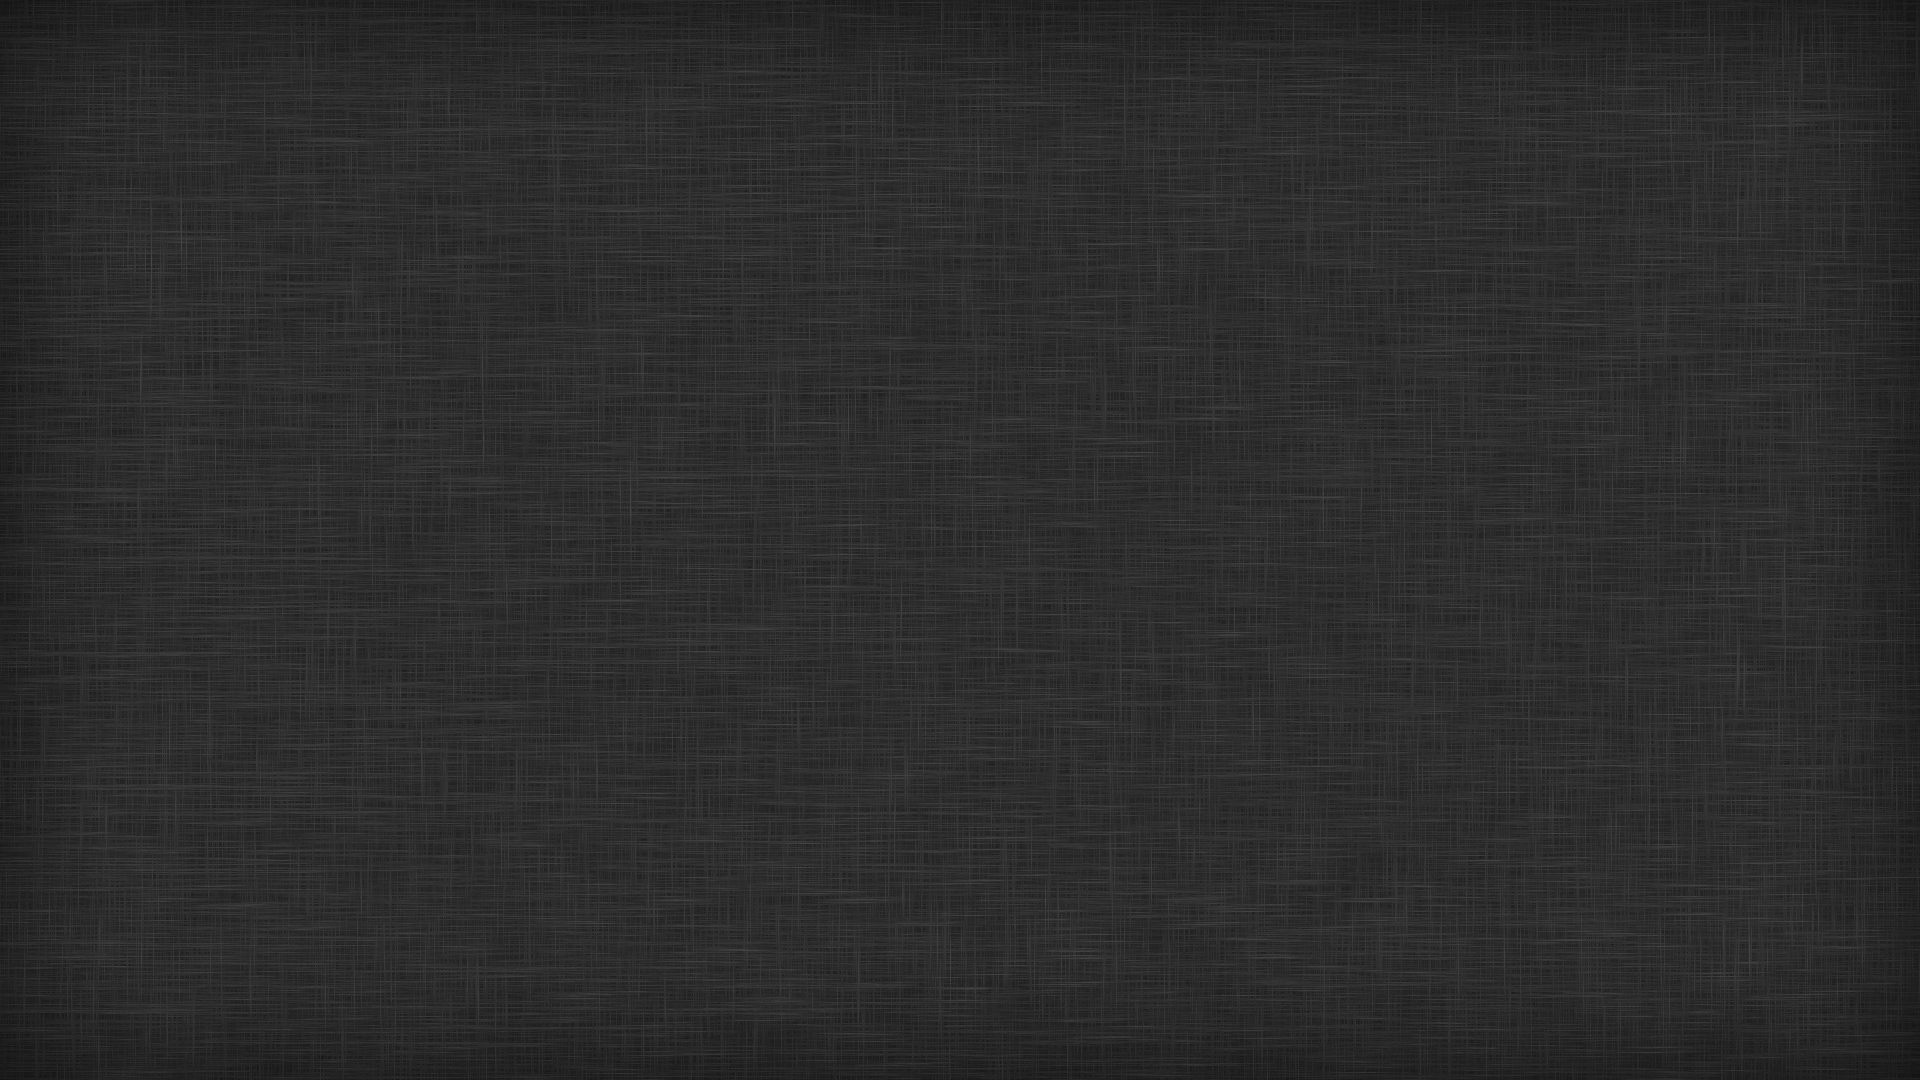 ios_linen_texture___black_by_vegardhw-d3ddll5